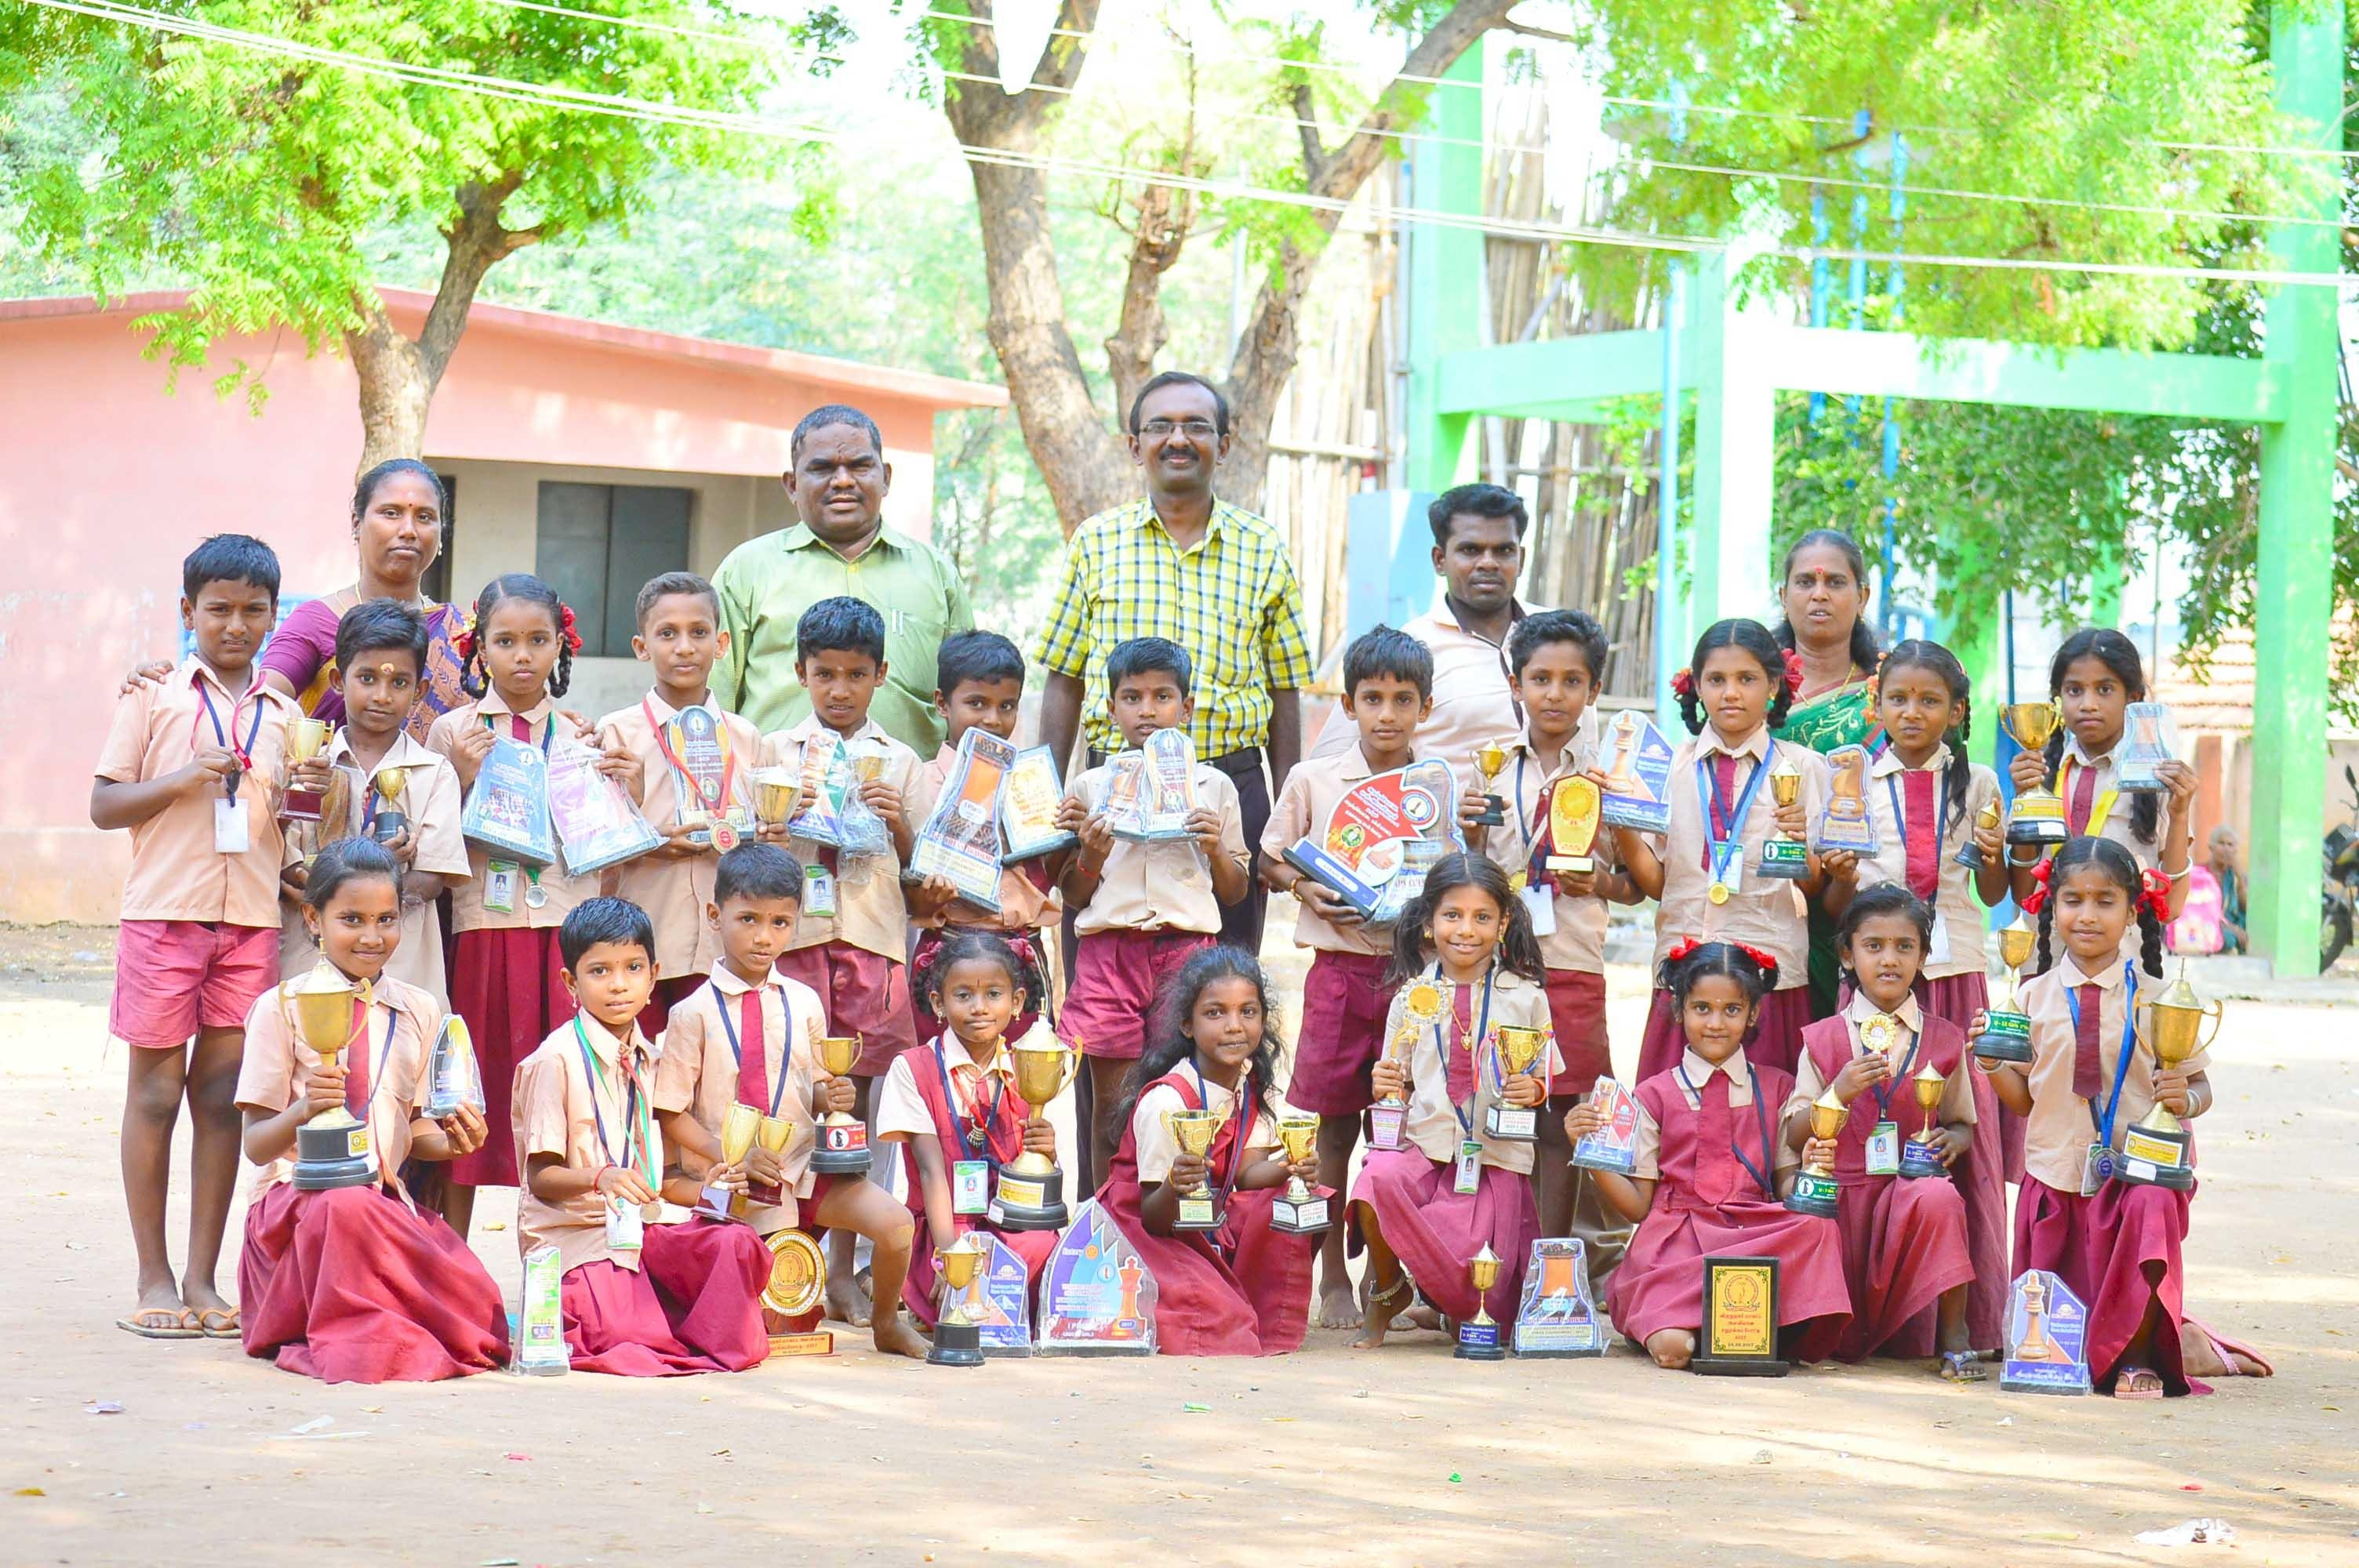 chess champian students with teachers